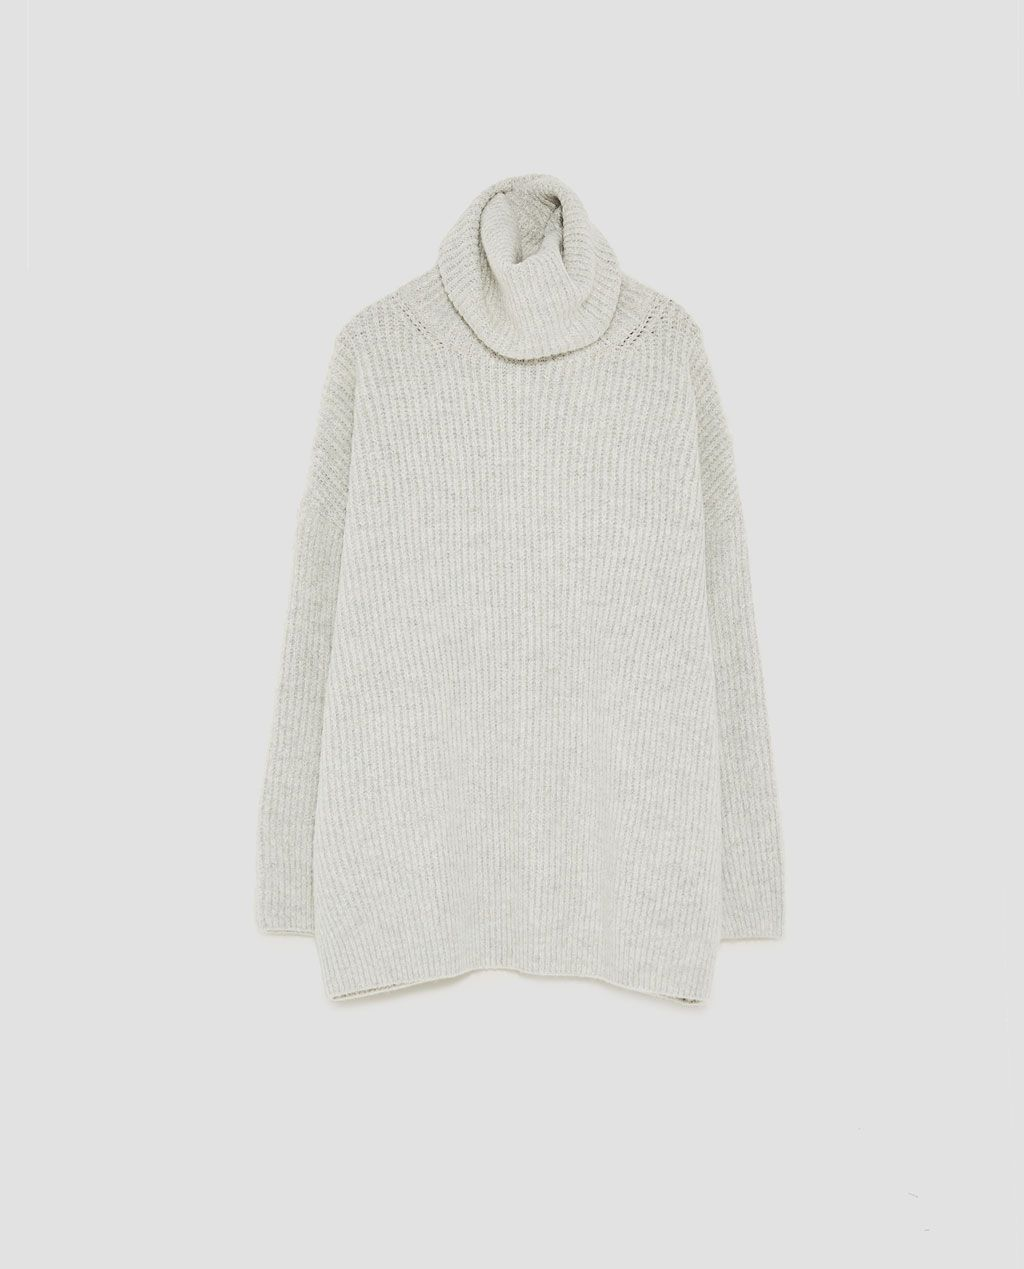 314d9056 Image 8 of OVERSIZED ROLL NECK SWEATER from Zara | clothes in 2019 ...